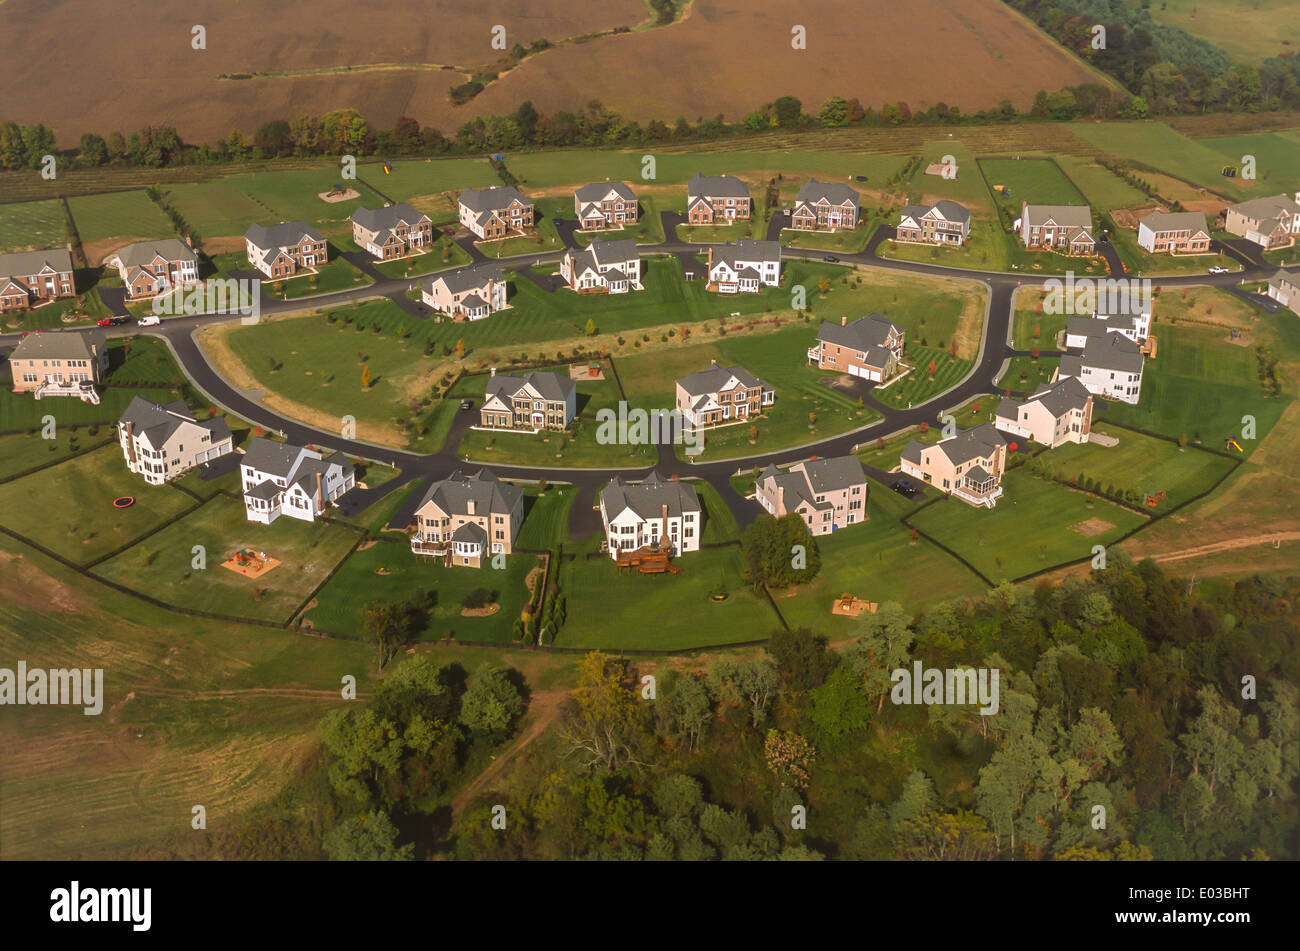 LOUDOUN COUNTY, VIRGINIA, USA - Aerial view of new housing development, Lenah Farms, on Route 50, on farm land, east of Aldie.